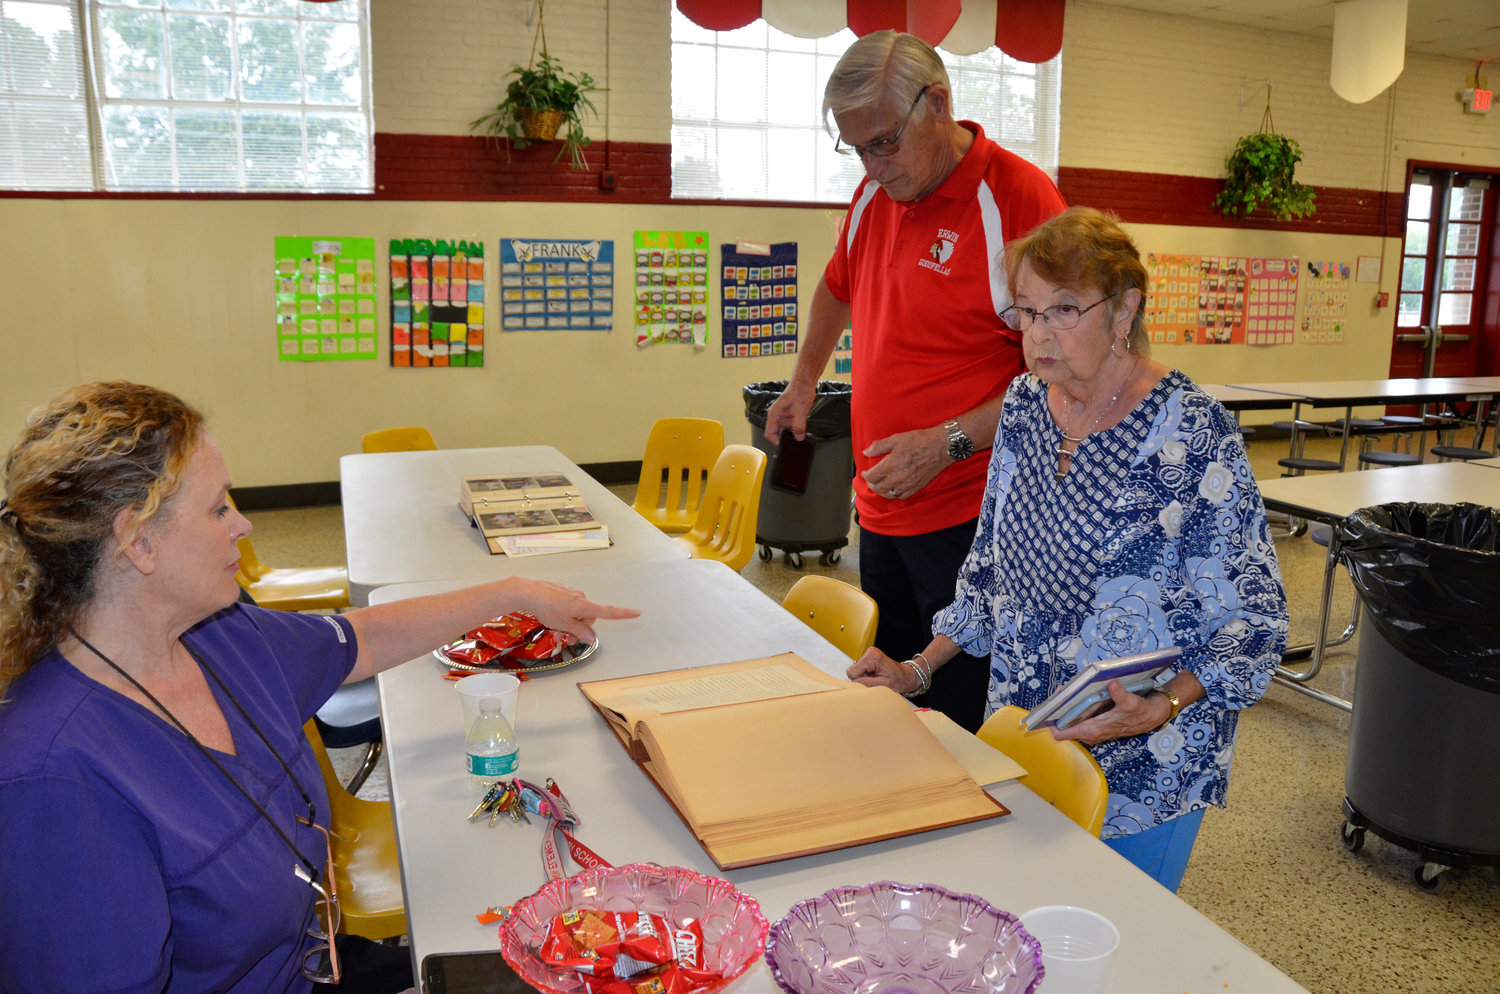 Erwin Elementary cafeteria manager Johnna Fann shows Jim and Jean Bradley of Erwin scrapbooks made by former students that she has found over the years at the school. She plans to give the books to the Erwin Historical Society.